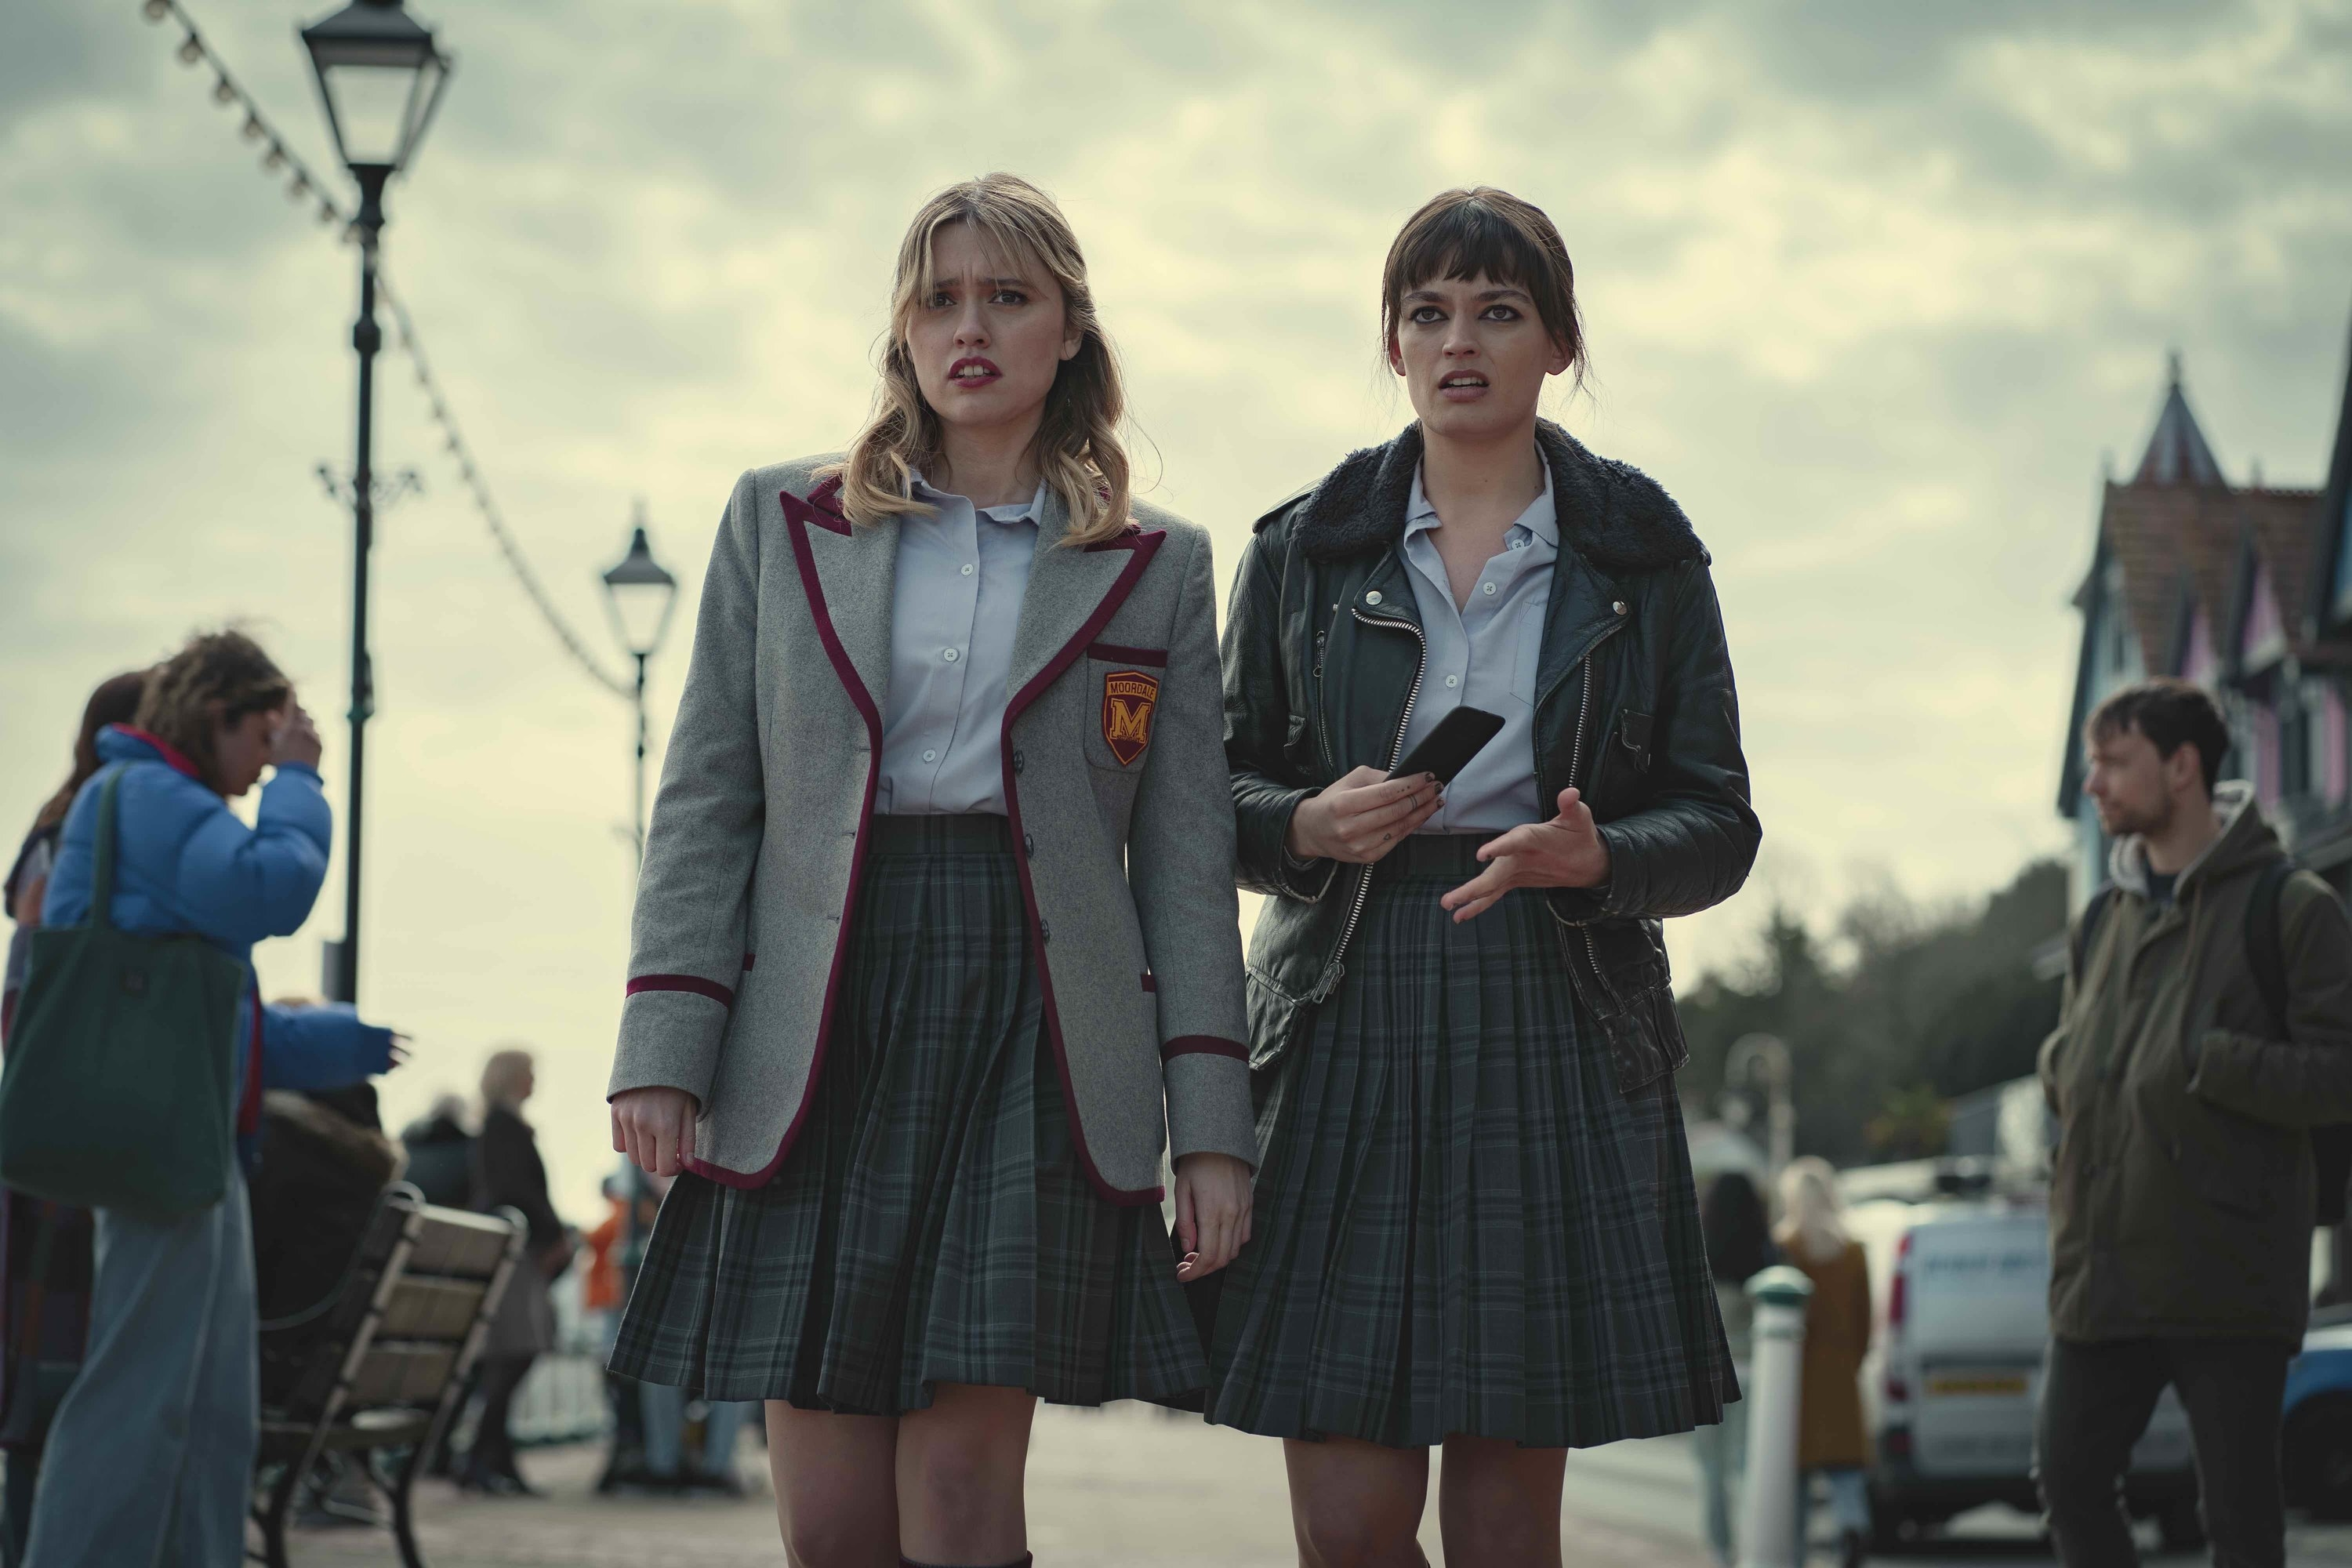 Maeve and Aimee in their Moordale uniforms